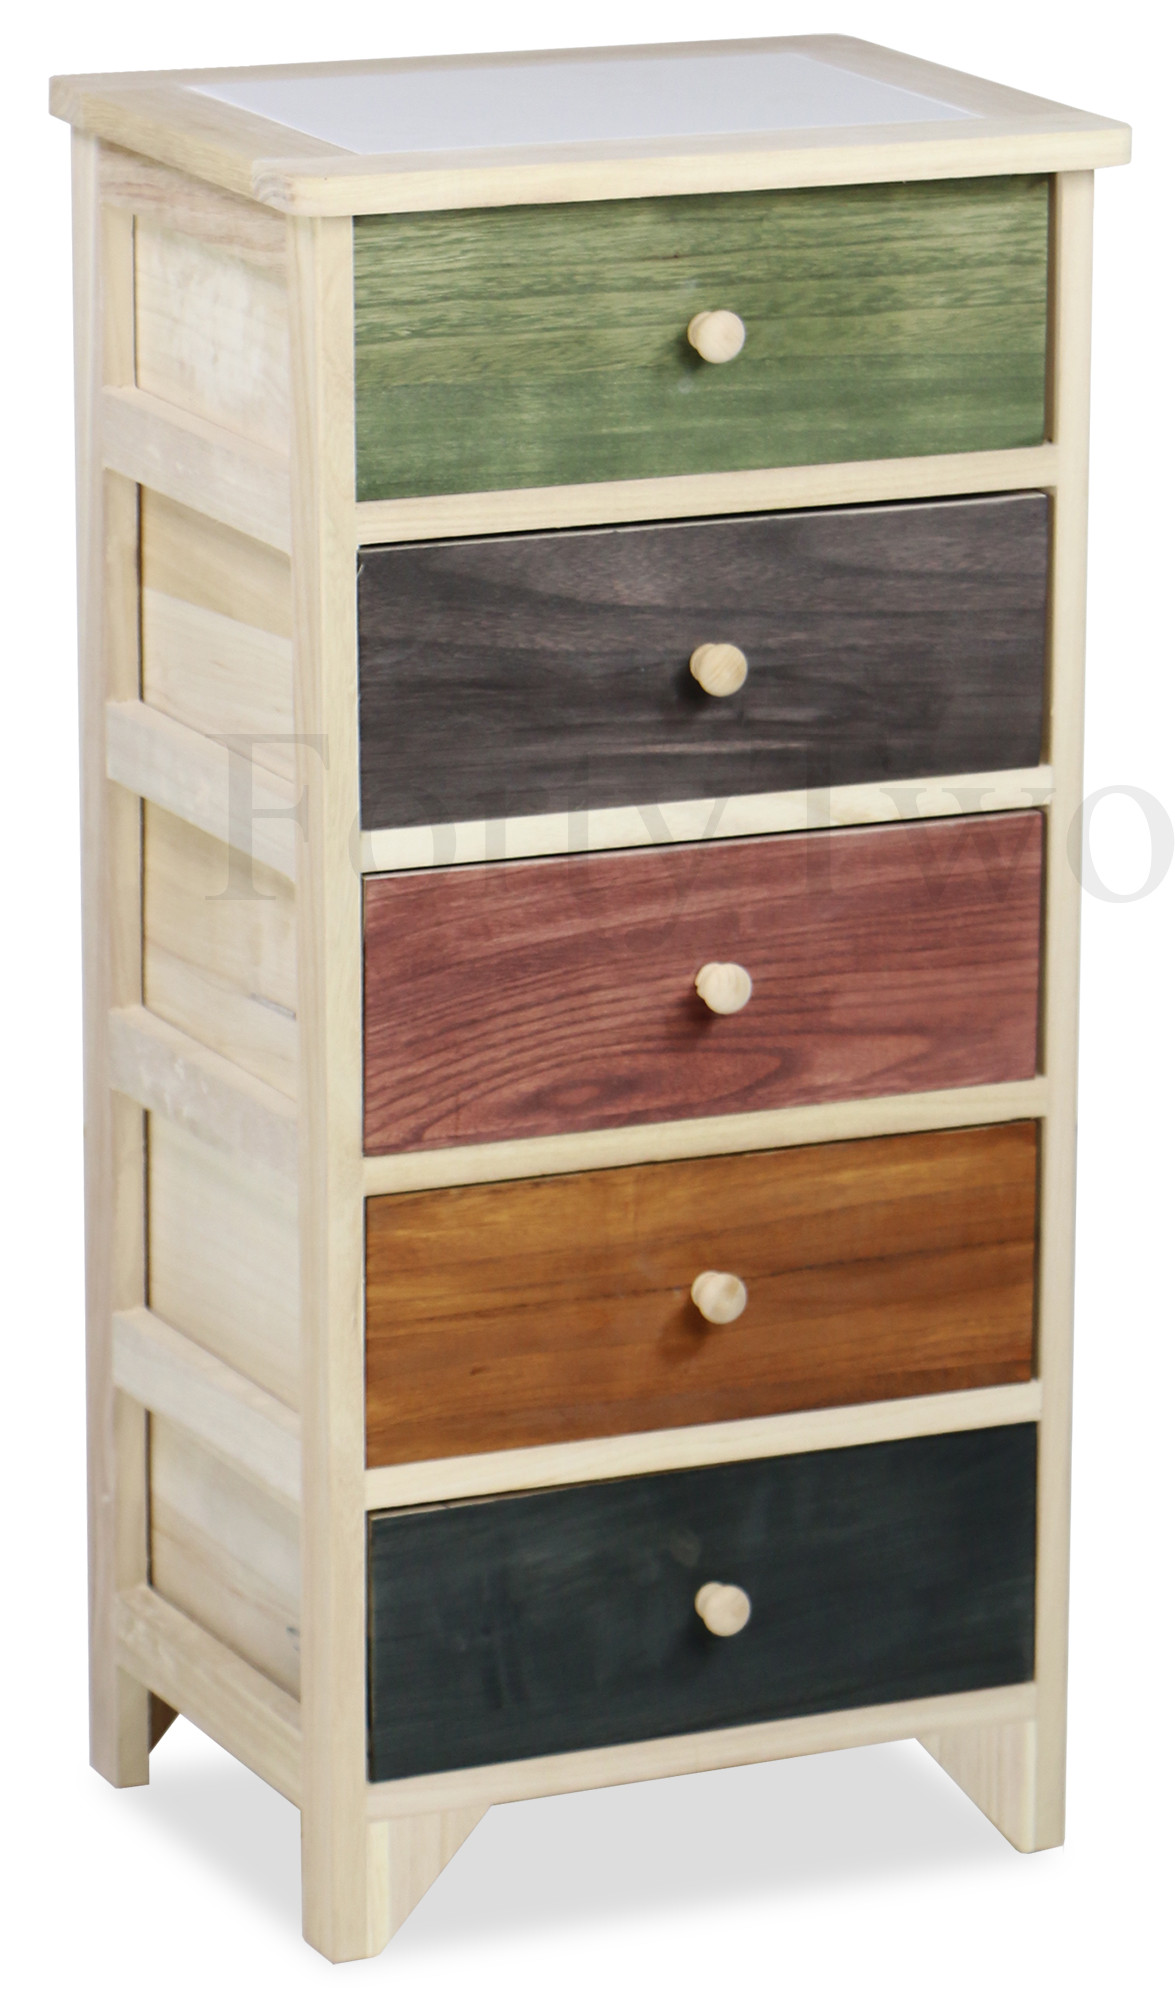 shabby chic 5 drawer hand crafted cabinet furniture home d cor fortytwo. Black Bedroom Furniture Sets. Home Design Ideas